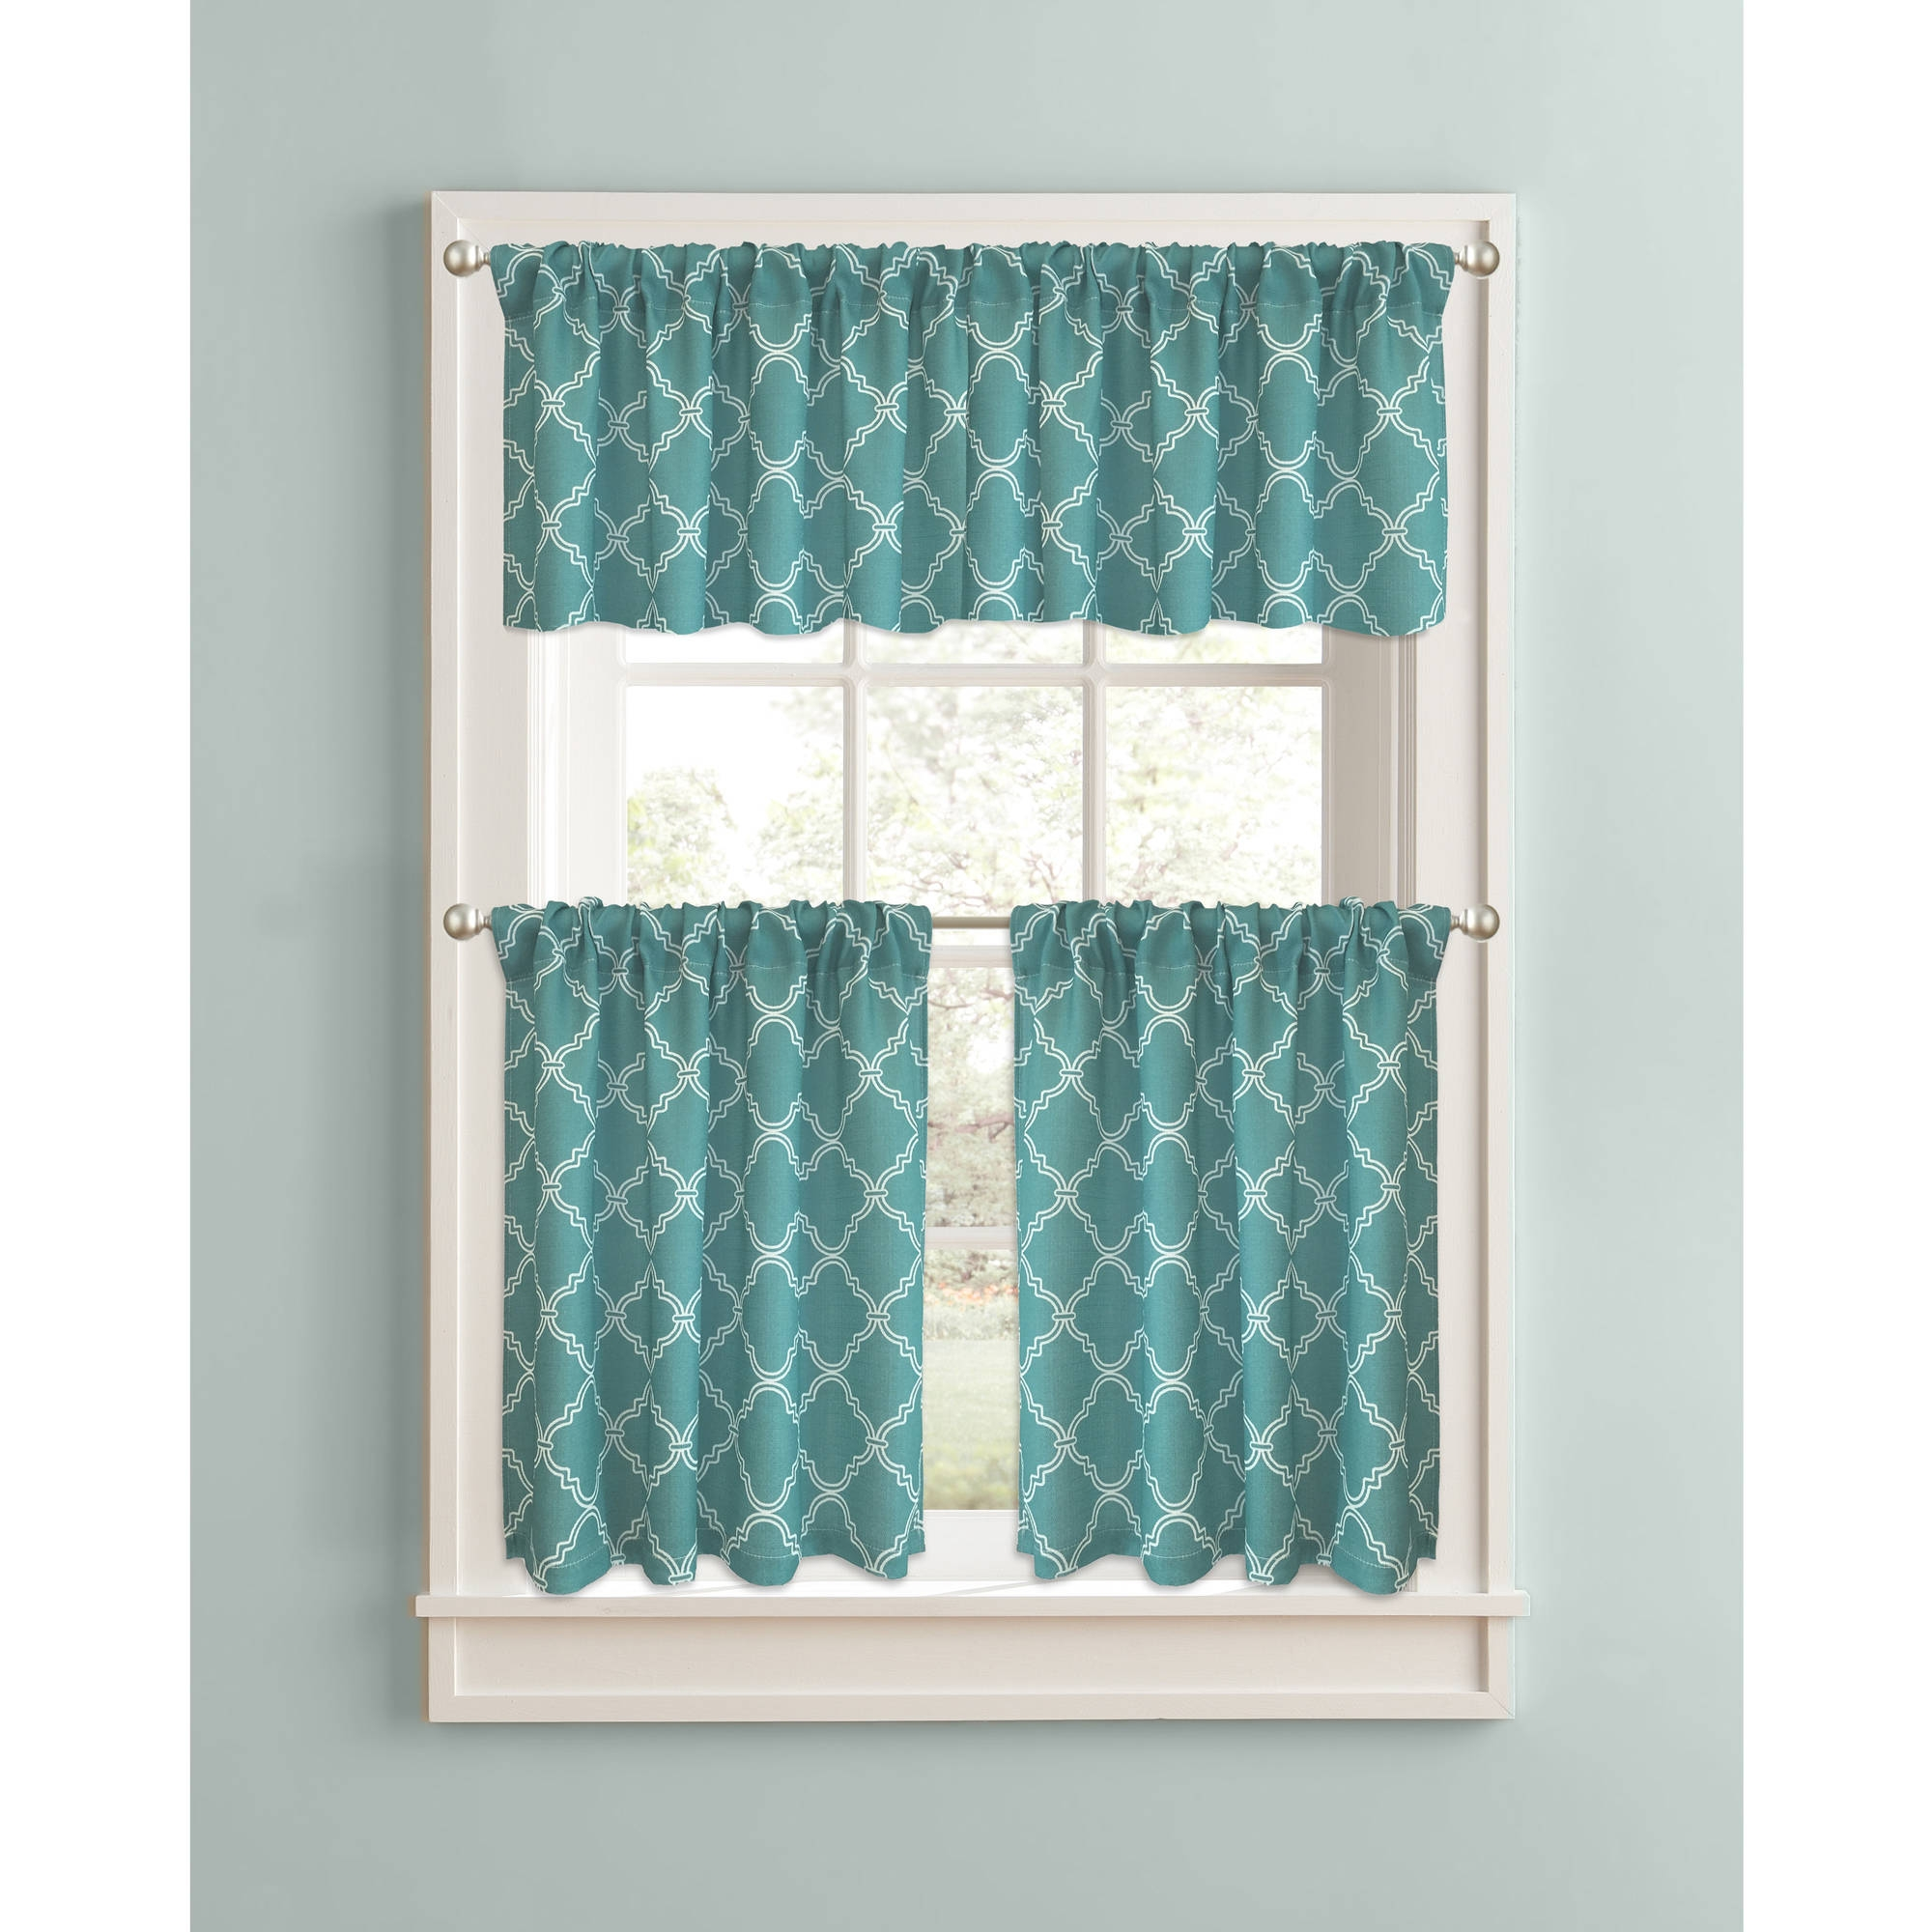 Better Homes And Gardens Trellis Kitchen Curtains Set Of 2 Inside Turquoise Trellis Curtains (Image 7 of 25)